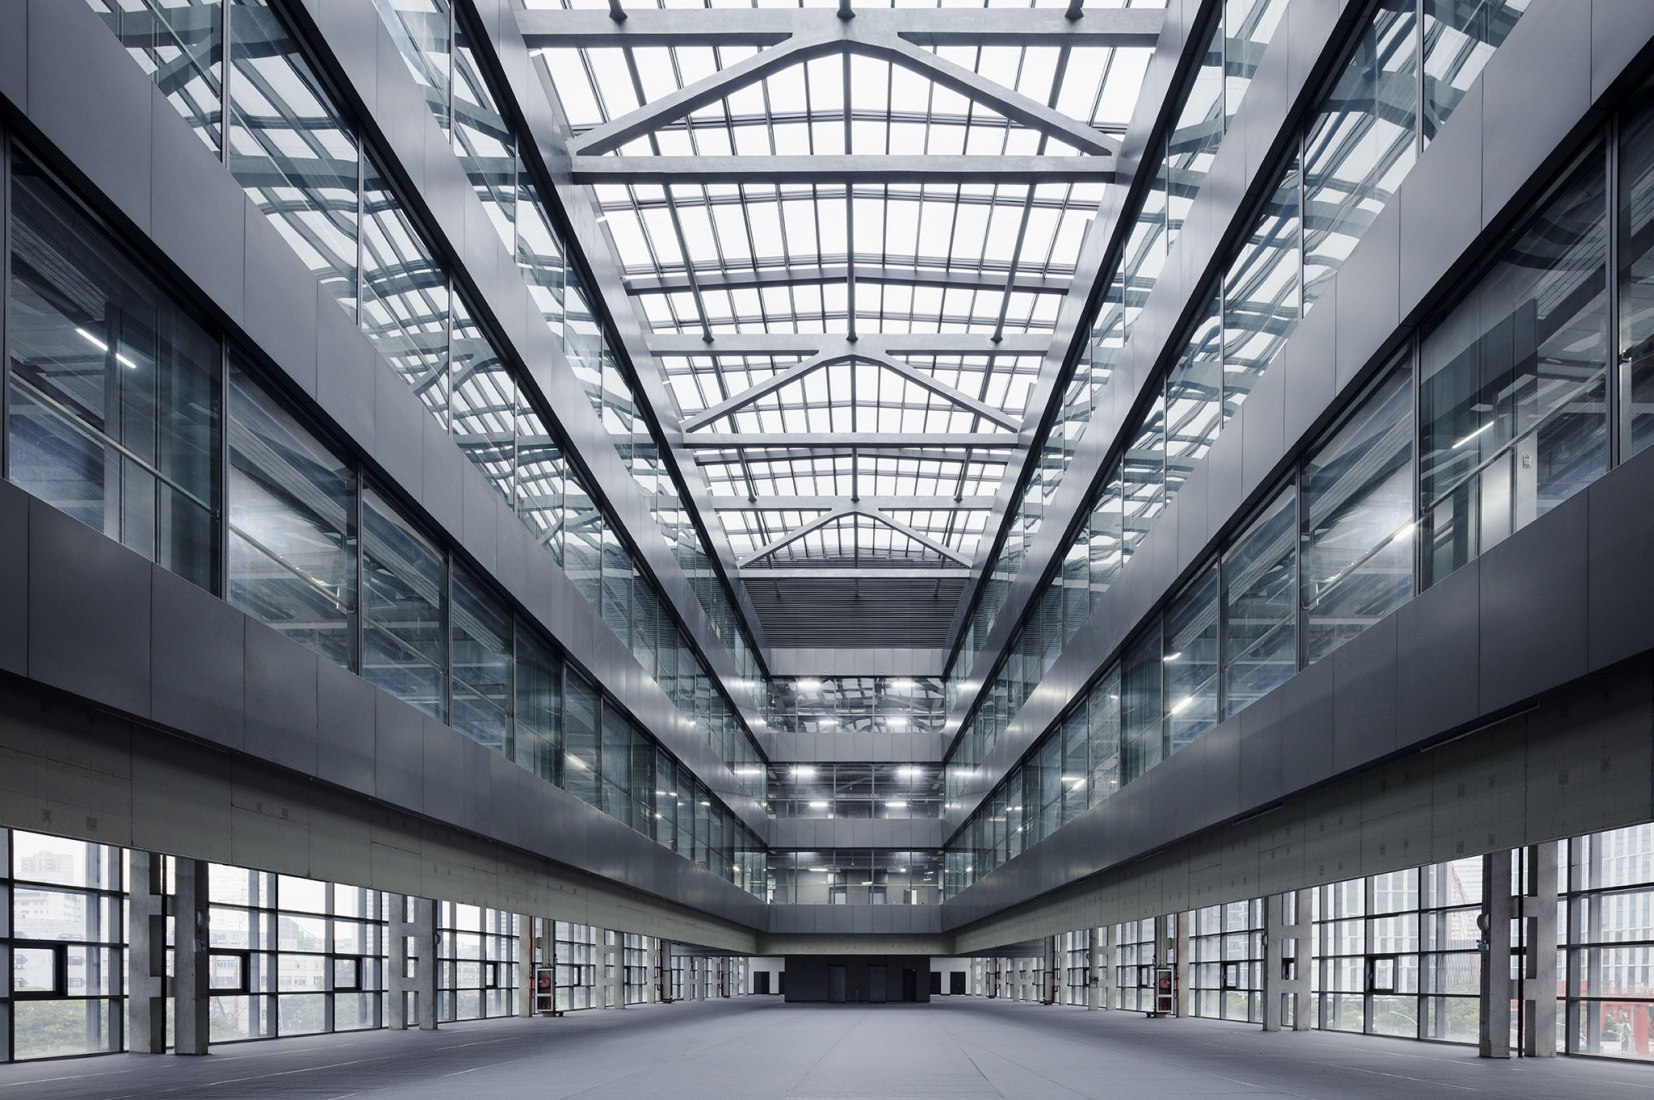 Atrium. Caohejing Xinzhou Plaza by GMP. Photograph by Hans-Georg Esch